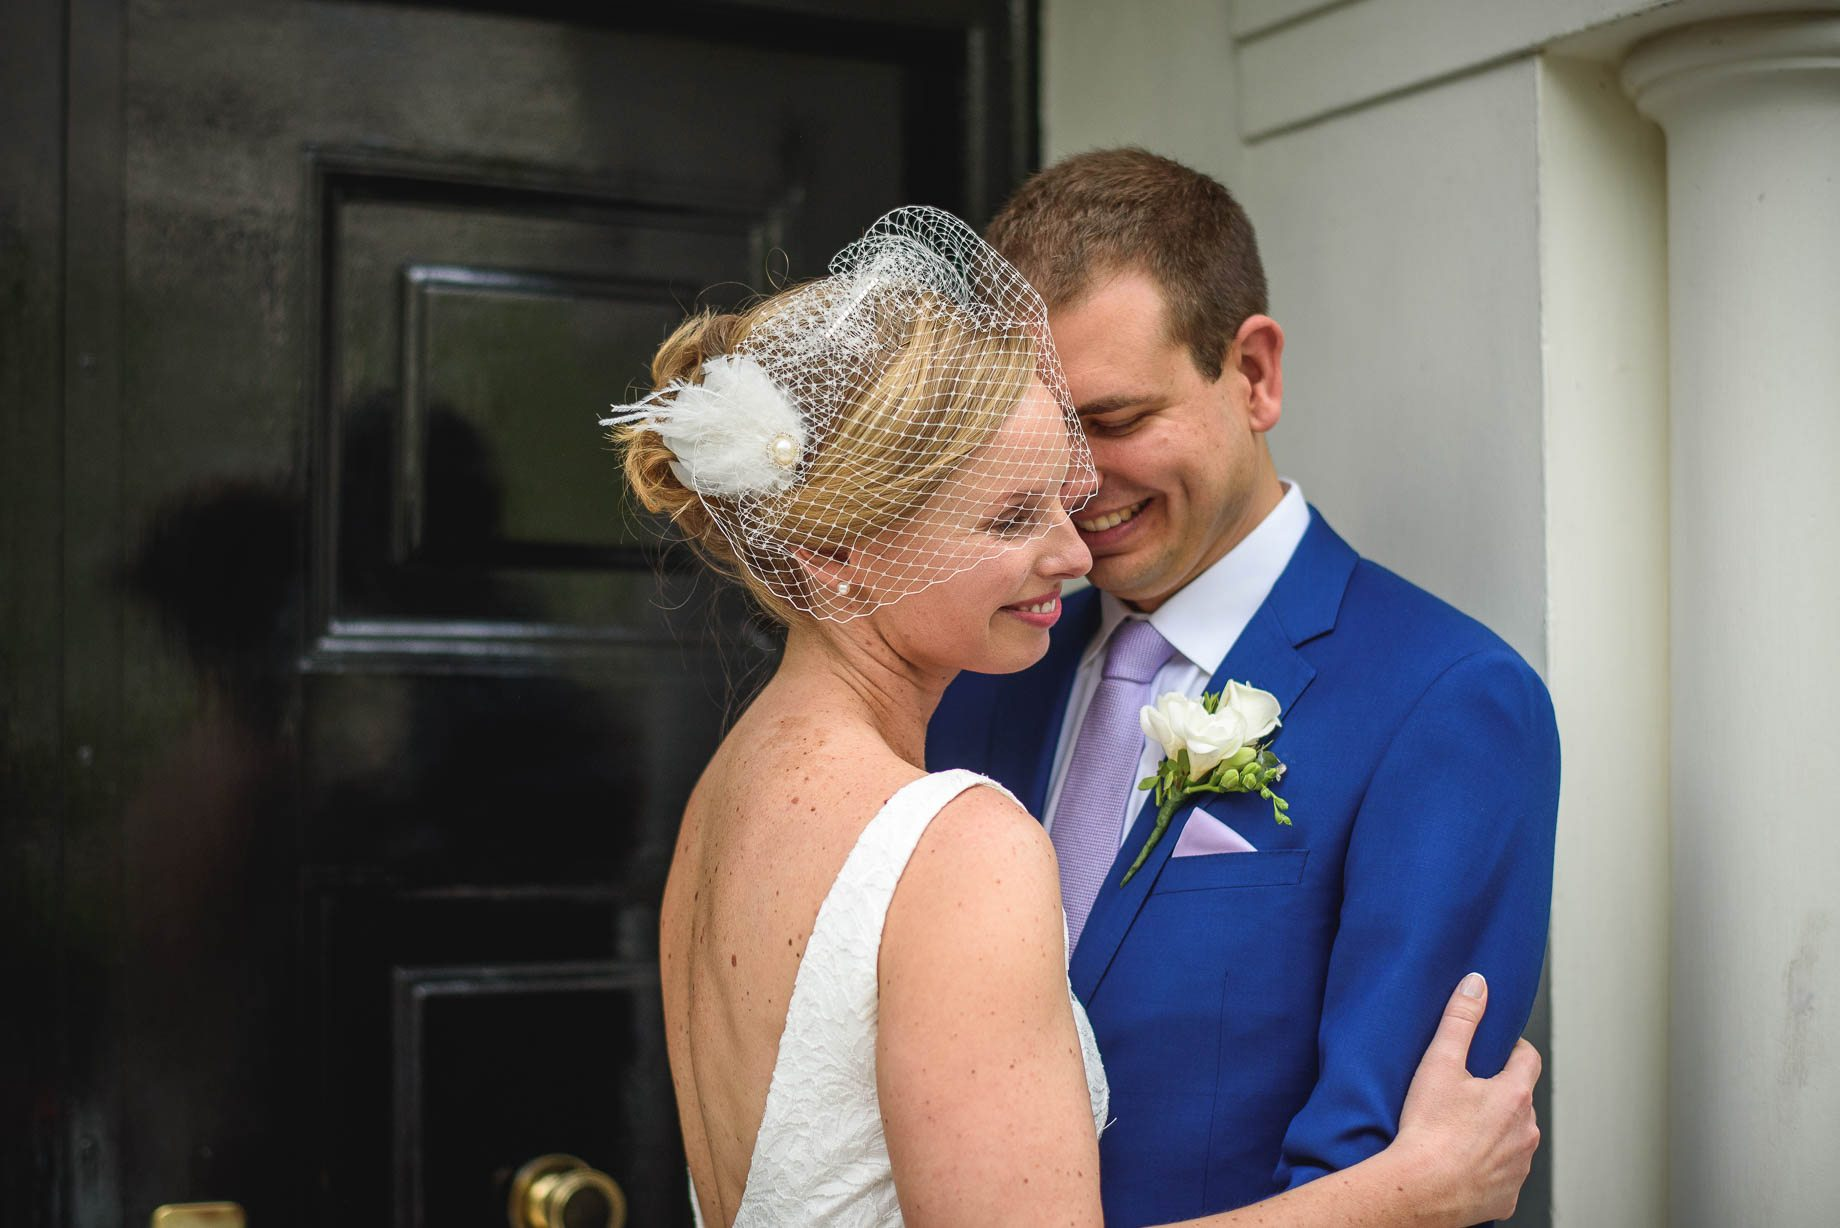 Bllomsbury House wedding photography in London - Katie and Taylor (77 of 156)